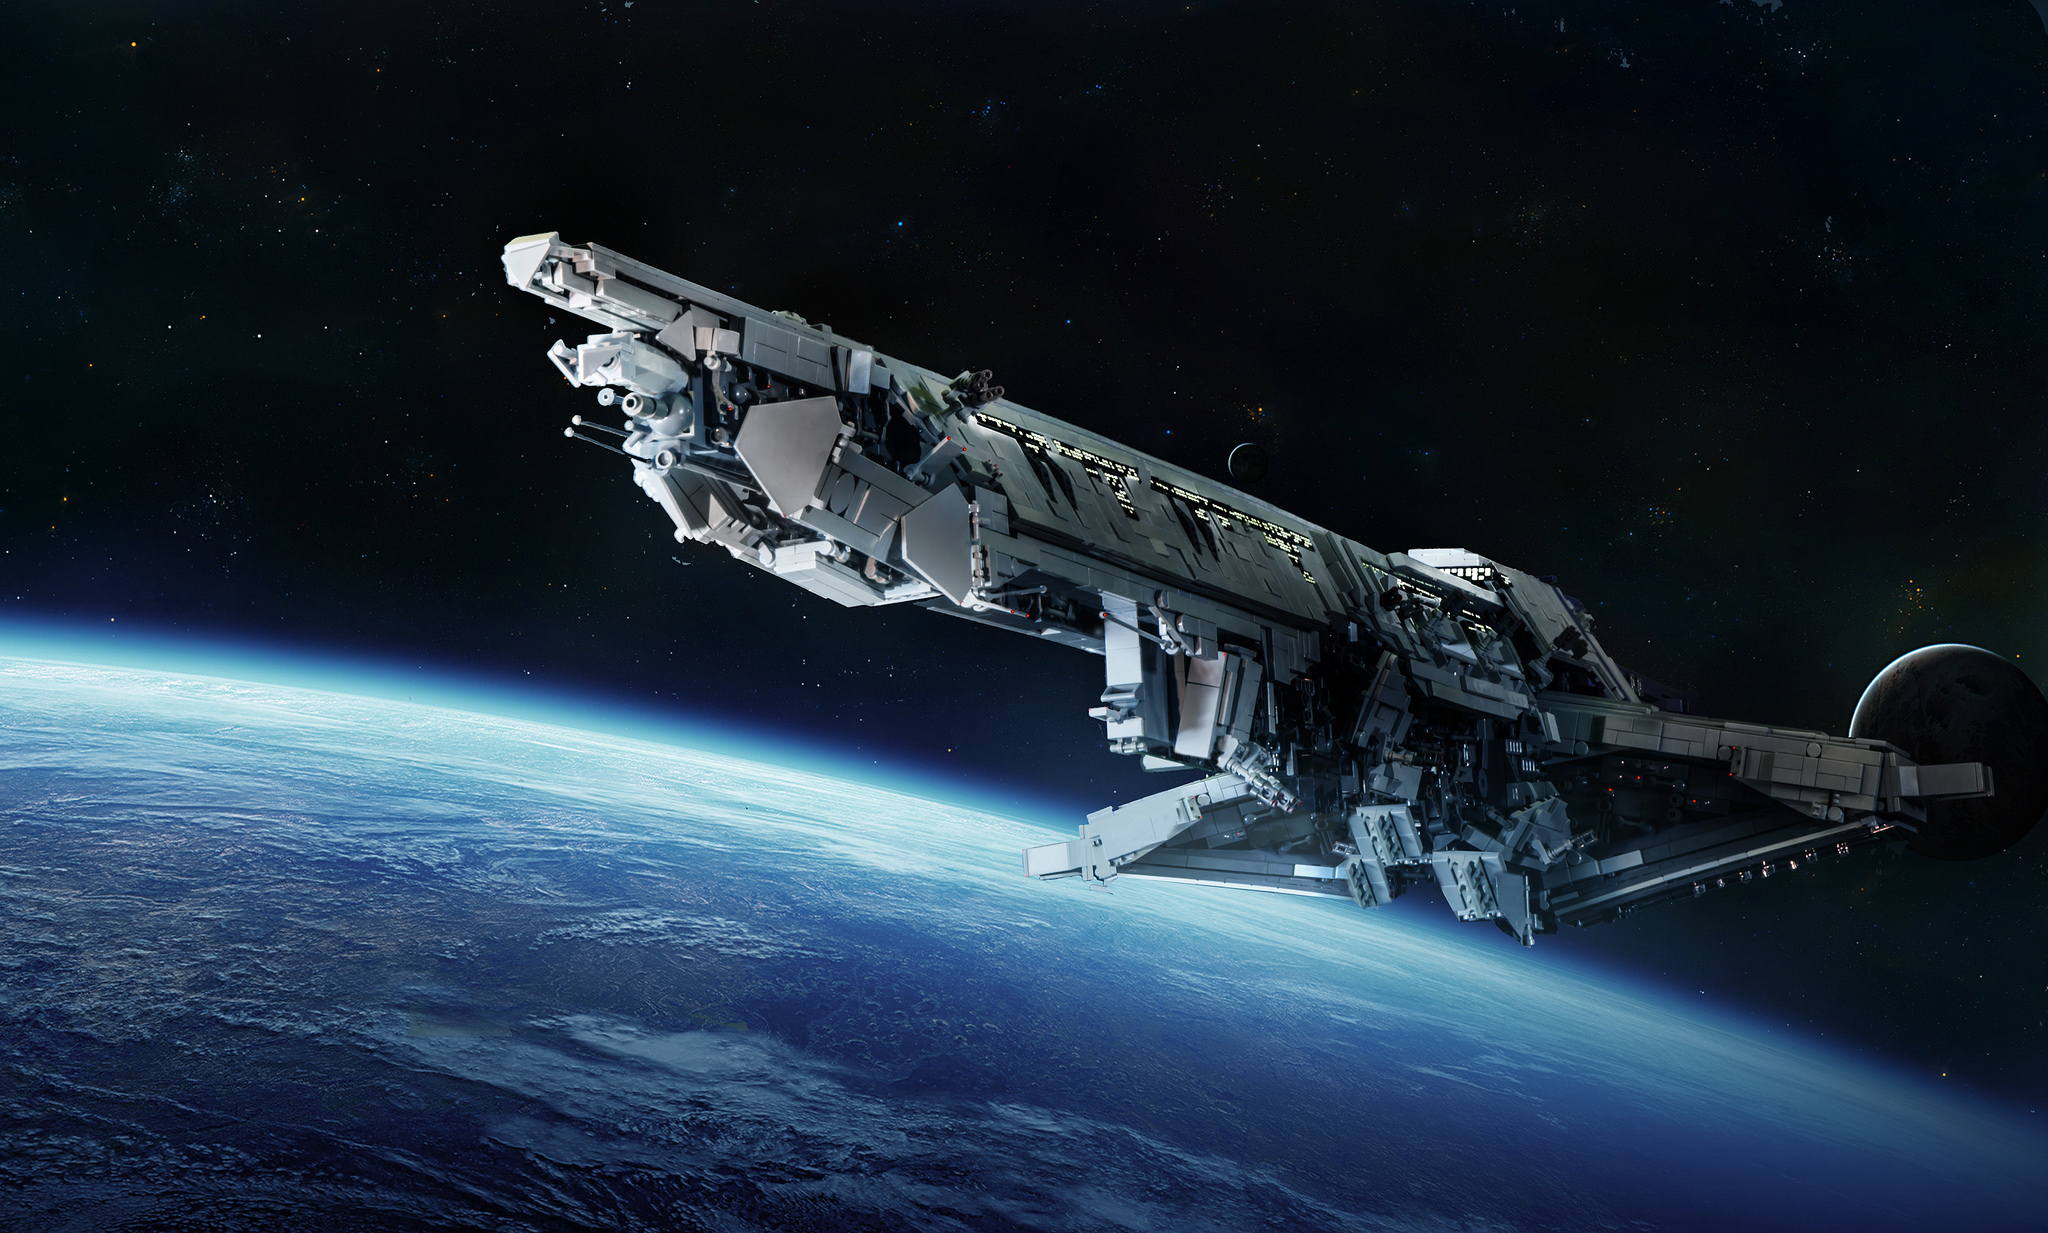 space-inspired-photoshop-manipulations-lego-spaceship